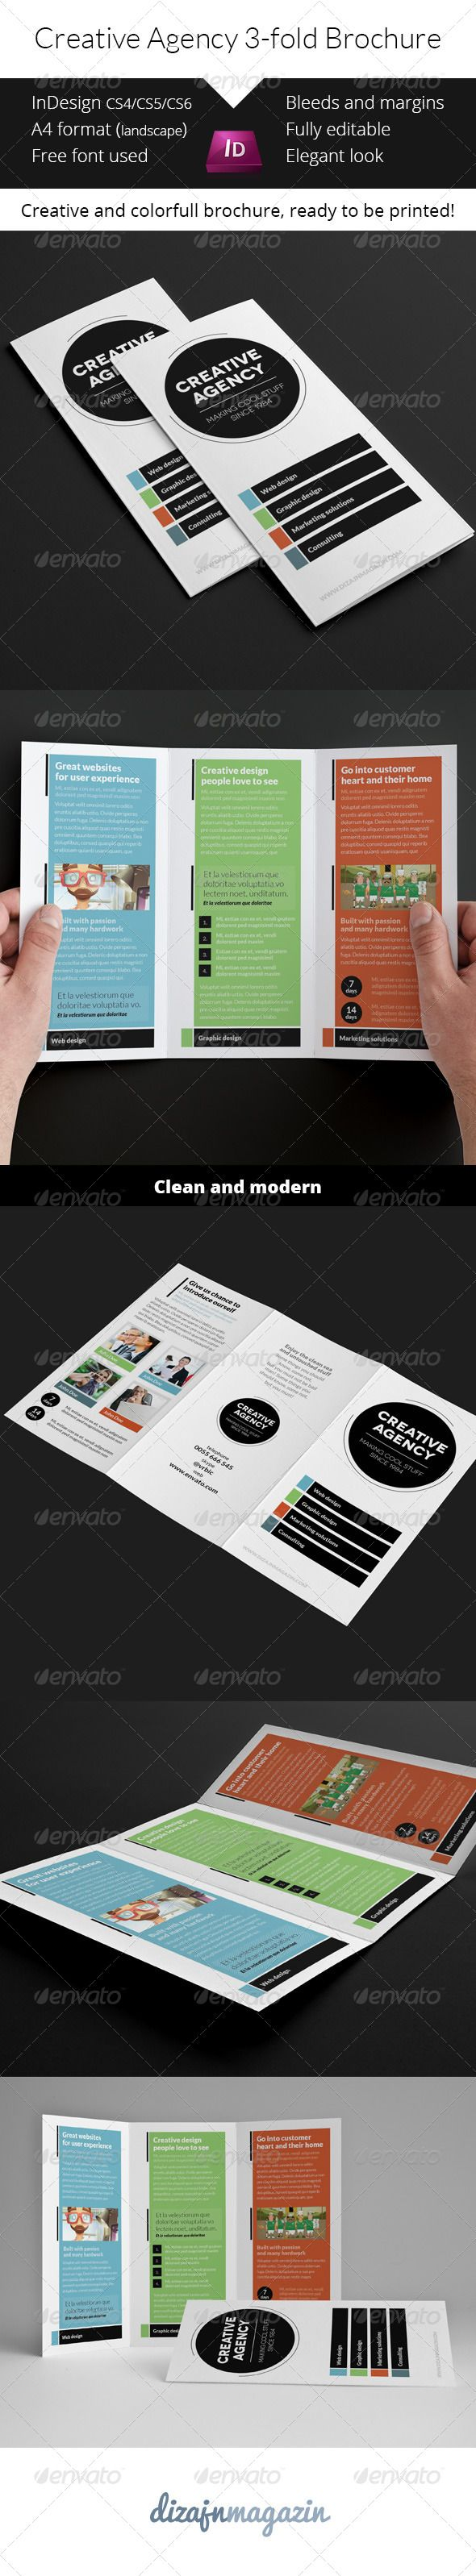 free indesign brochure templates cs6 - 1000 images about design template on pinterest creative